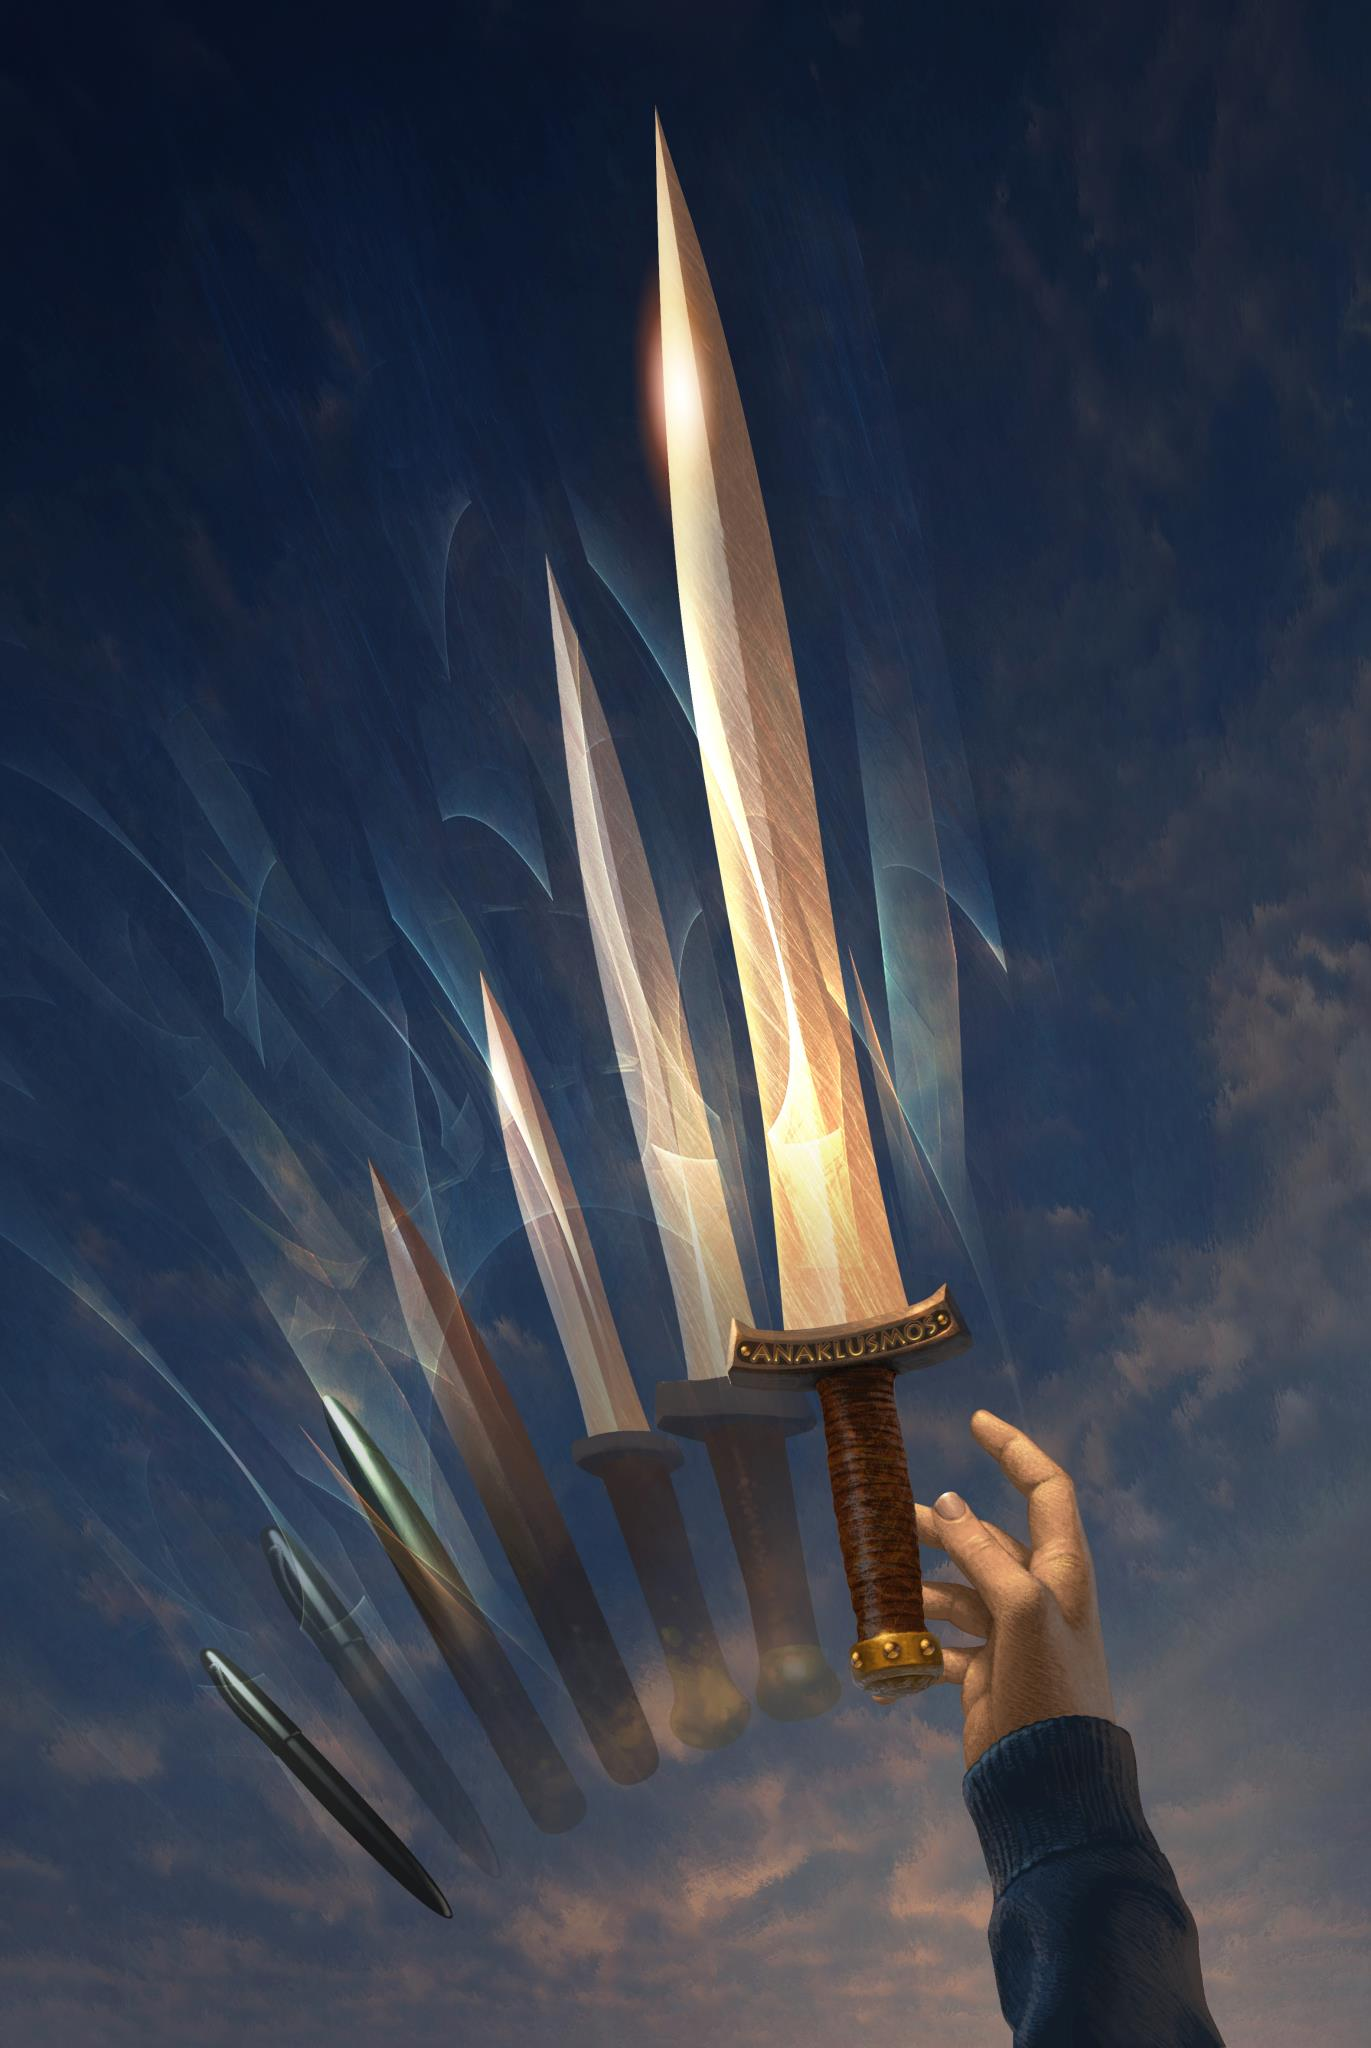 From the Percy Jackson Sword Riptide